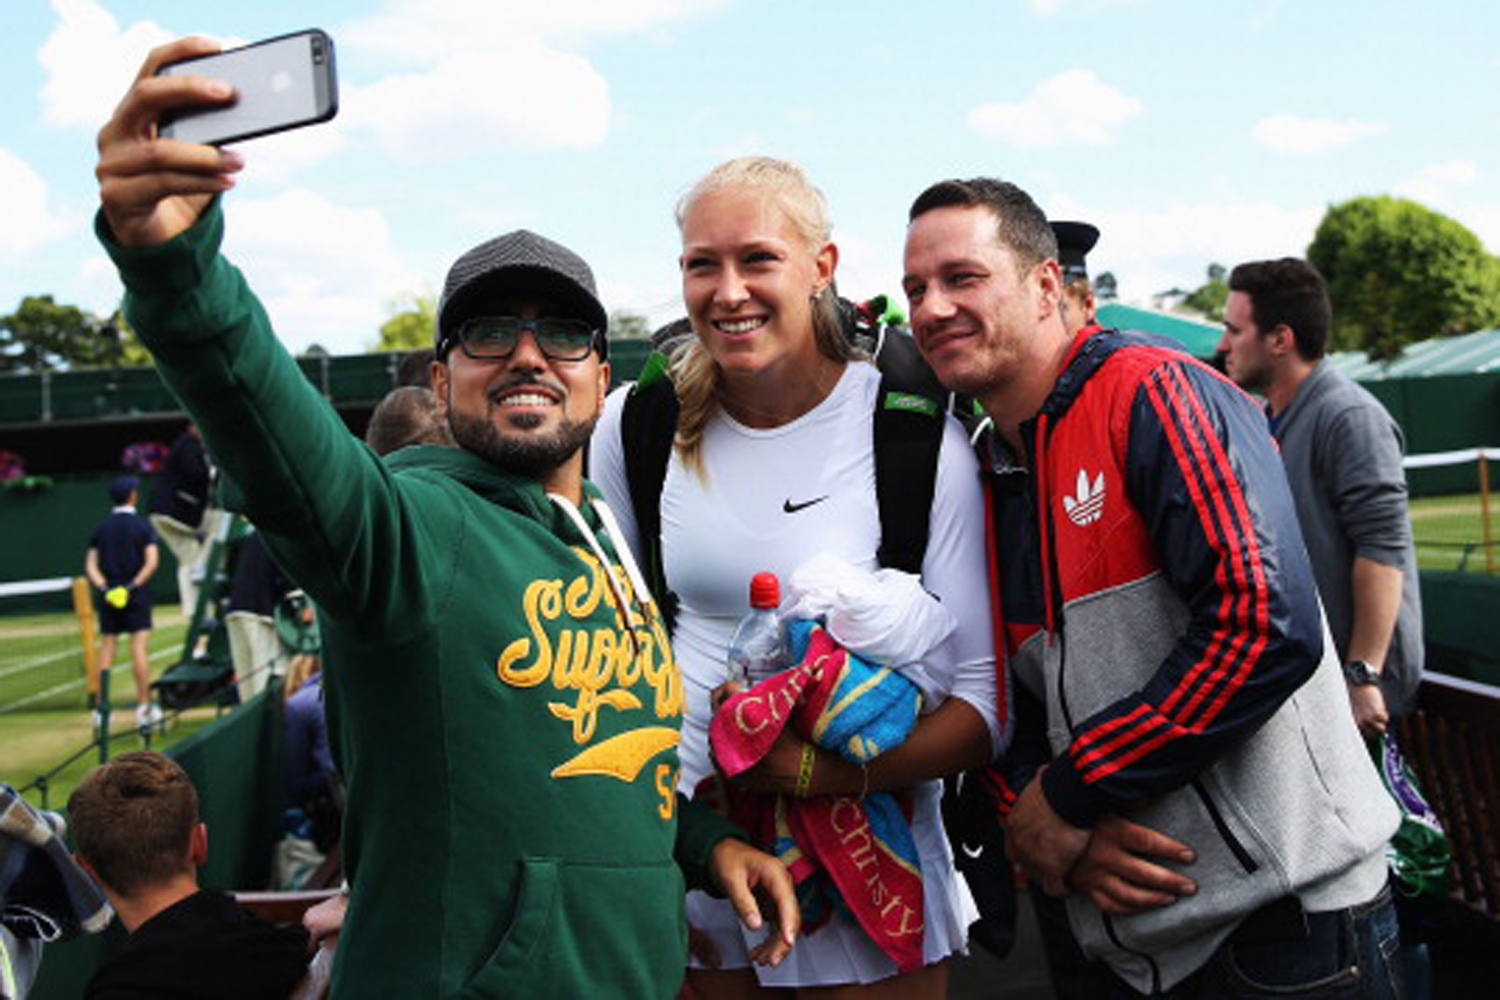 Jocelyn Rae of Great Britain poses for a selfie with fans after her Mixed Doubles first round match with Colin Fleming against Scott Lipsky of the United States and Jie Zheng of China on day five of the Wimbledon Lawn Tennis Championships at the All England Lawn Tennis and Croquet Club on June 27, 2014 in London, England